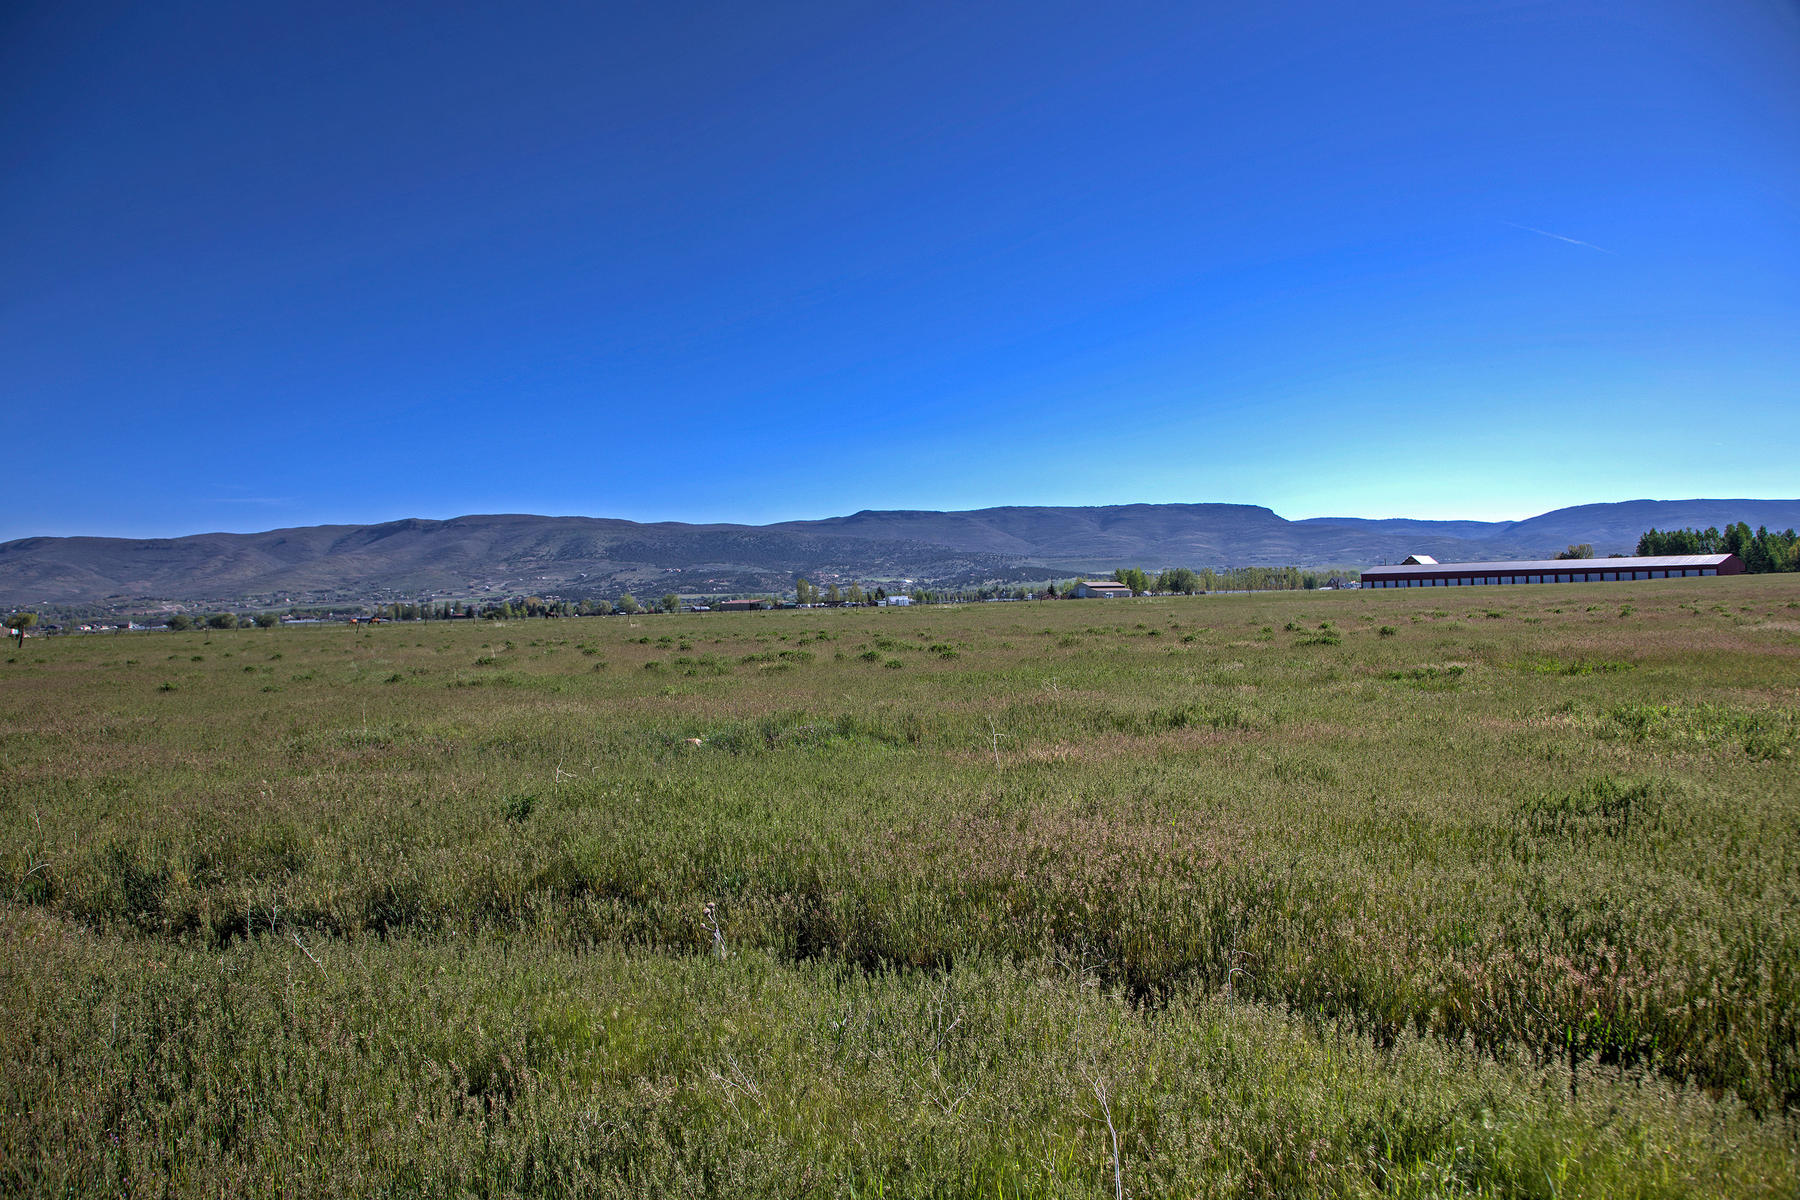 Additional photo for property listing at 13 Acres in Heber City Highway 40 Access 2300 S Highway 40 Heber City, Utah 84032 United States